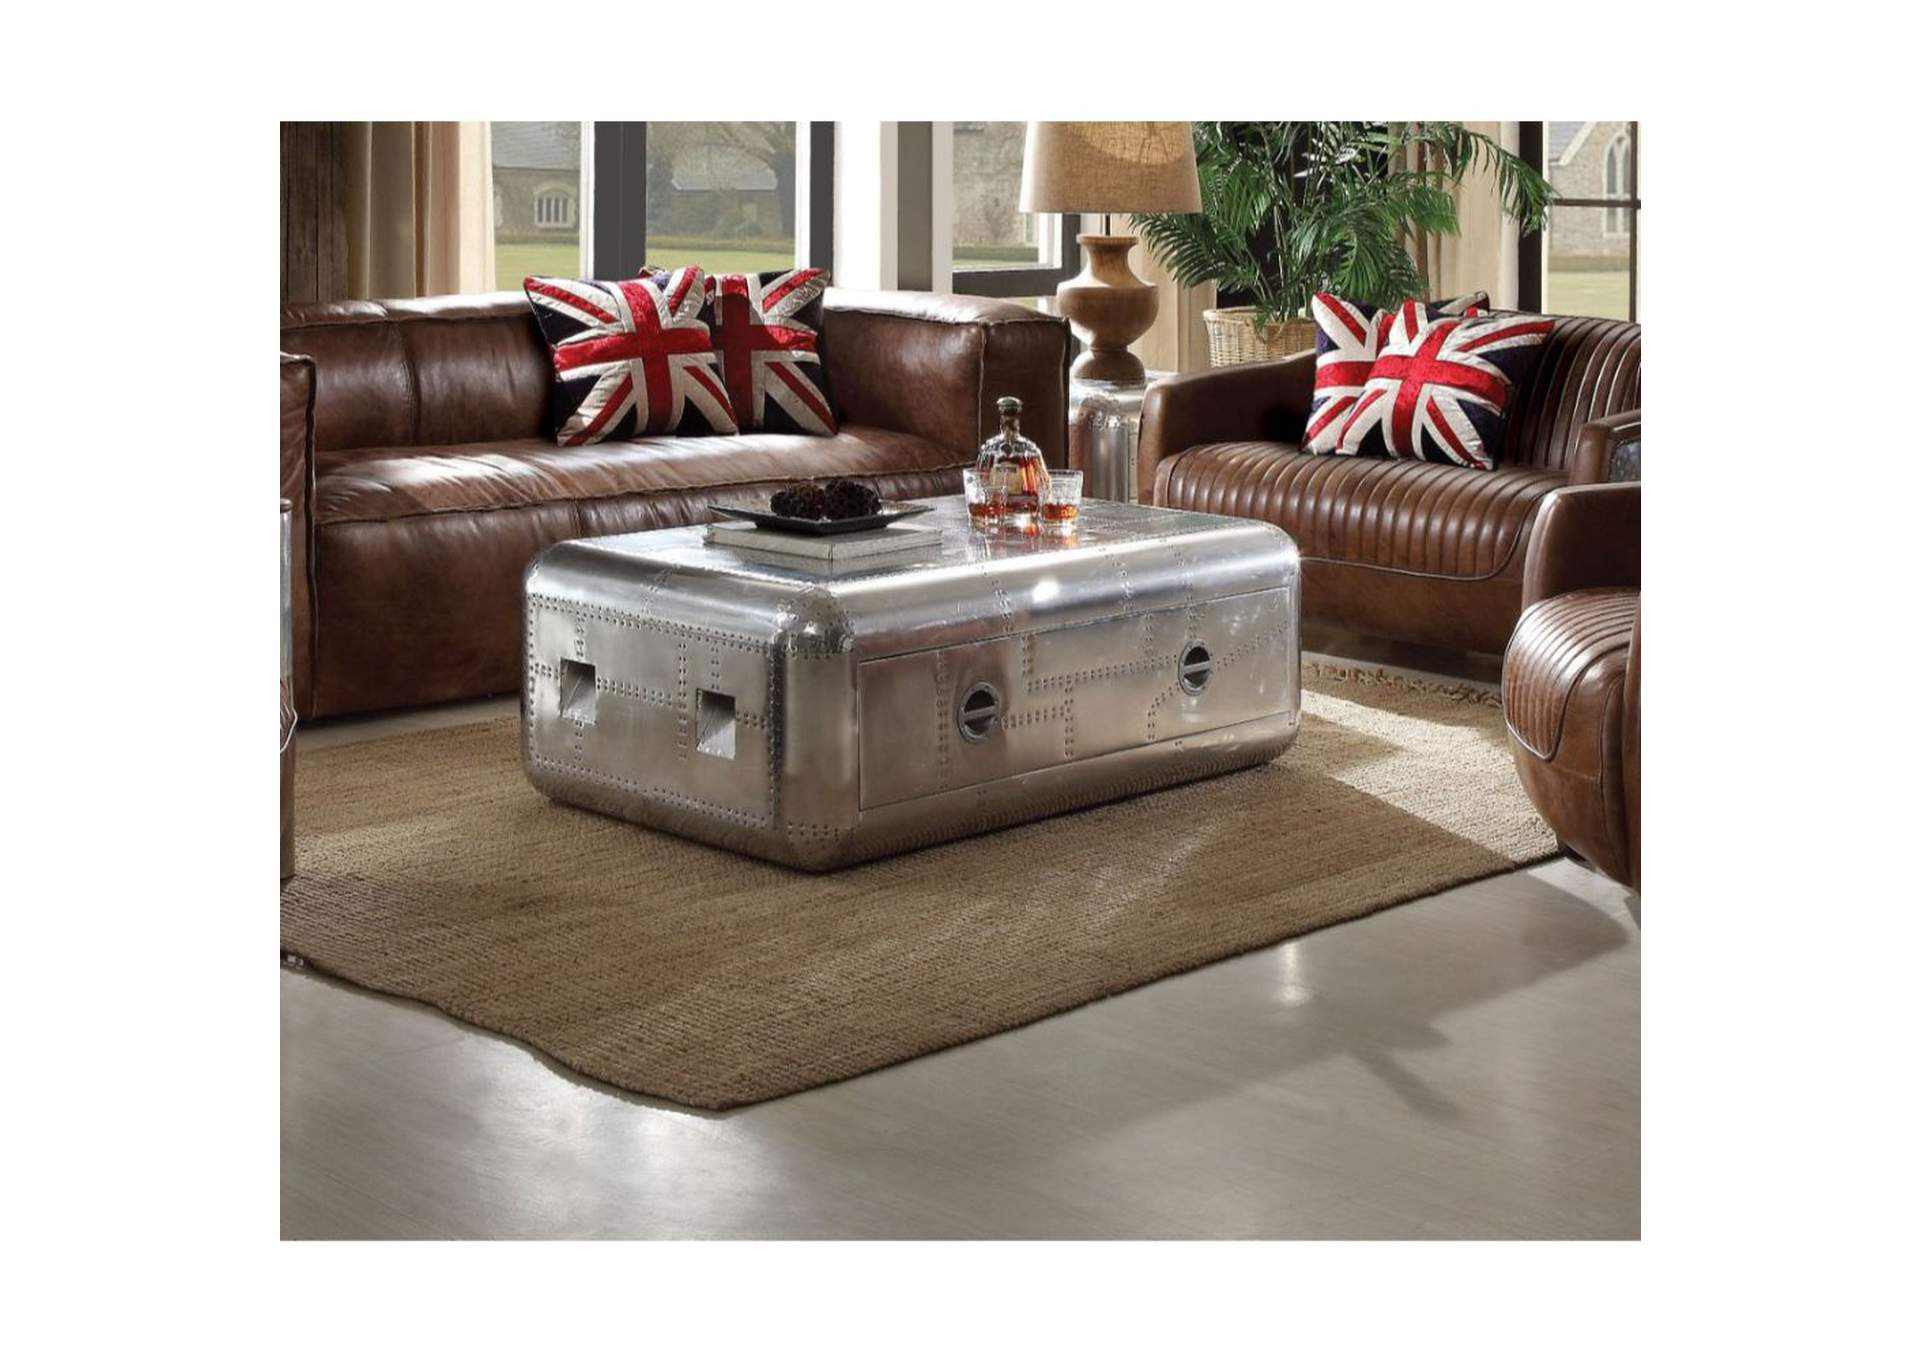 Brancaster Aluminum Coffee Table,Acme